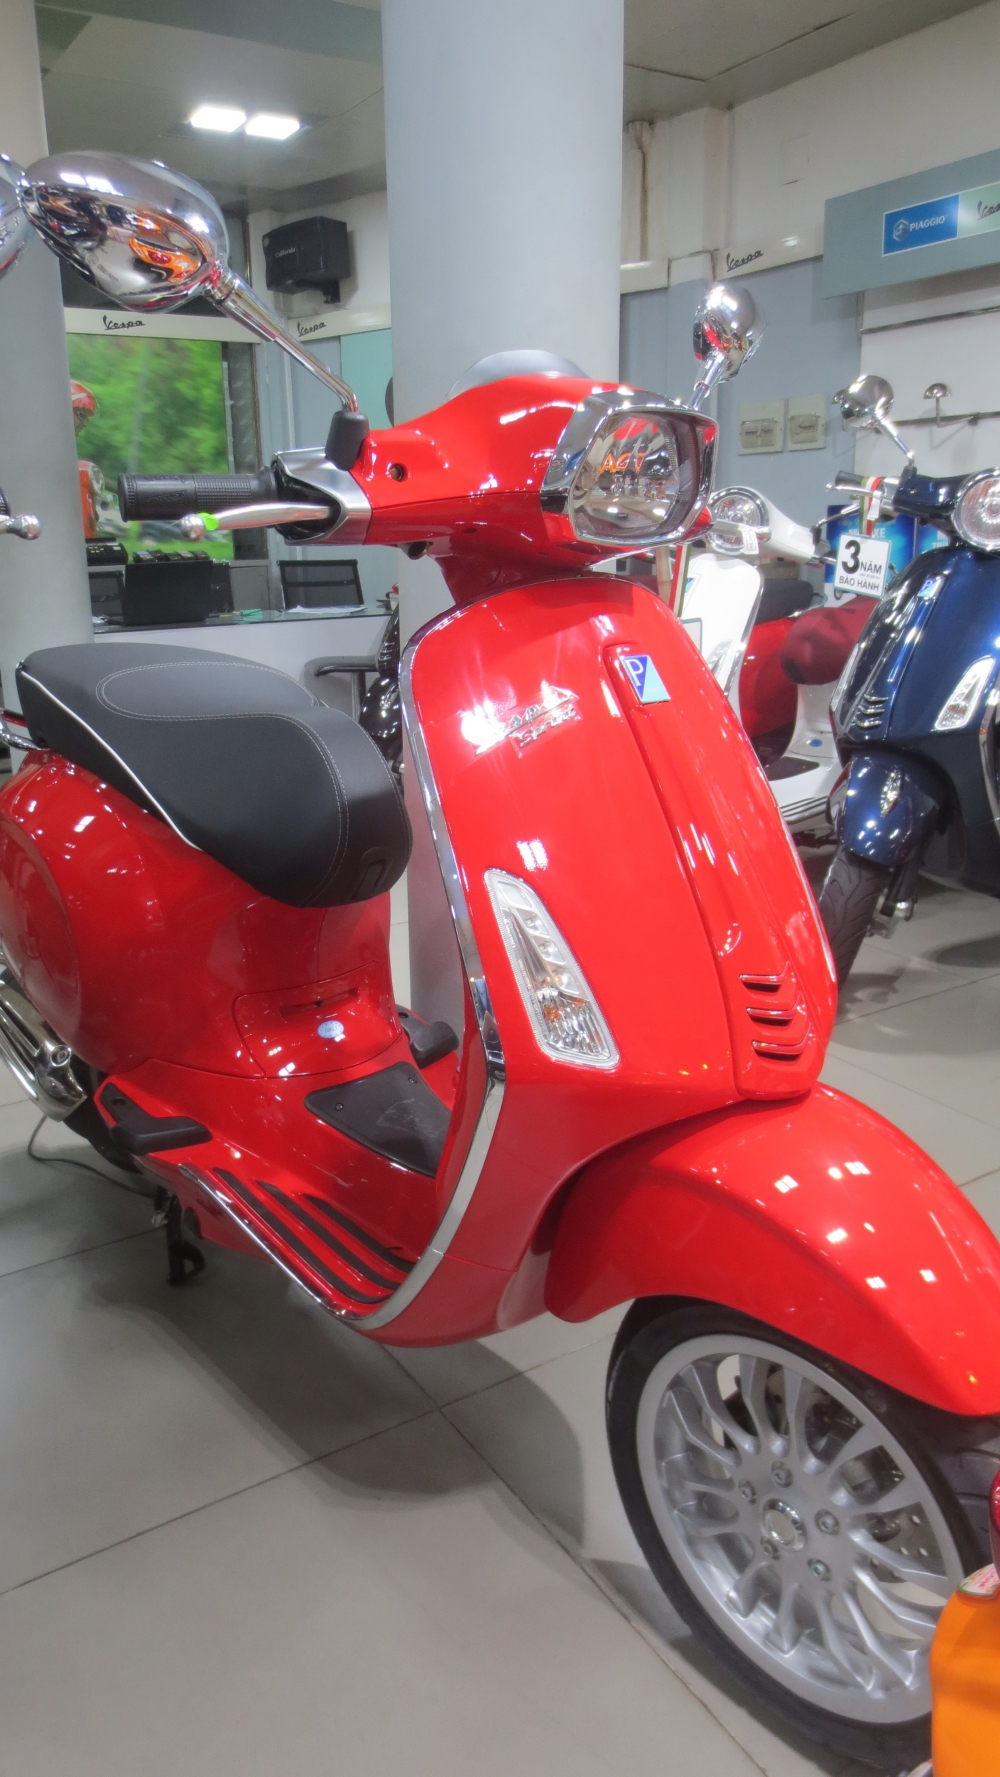 VESPA Sprint ABS chinh hang gia re nhat SG - 8